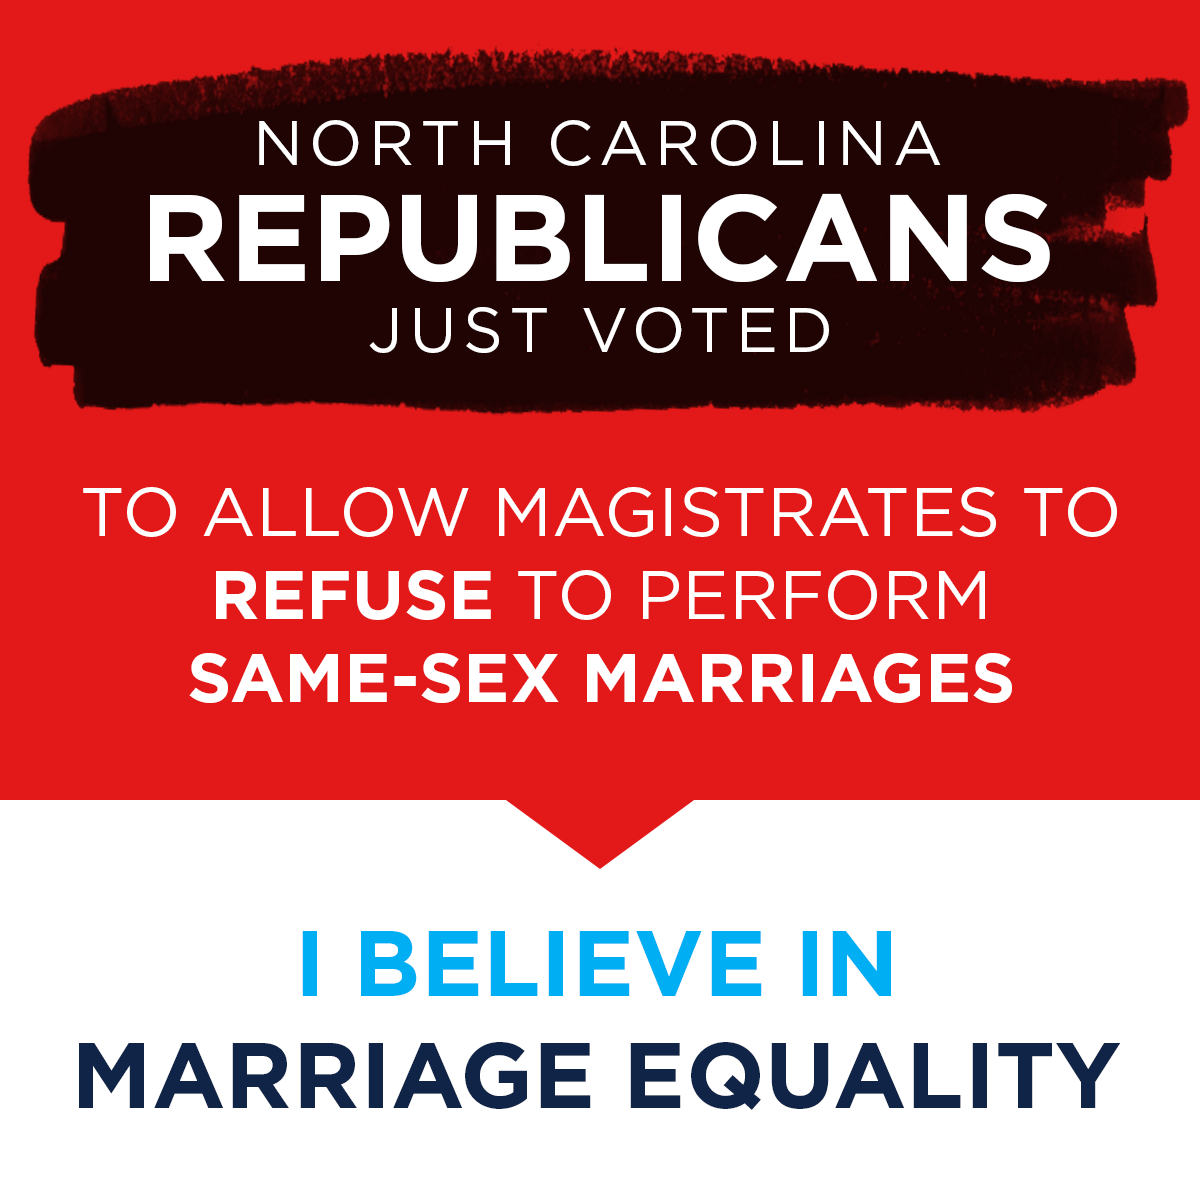 A sad day for NC families. GOP legalize discrimination without notice or debate. That's just wrong. #ncpol http://t.co/I8Gpi8dEXh